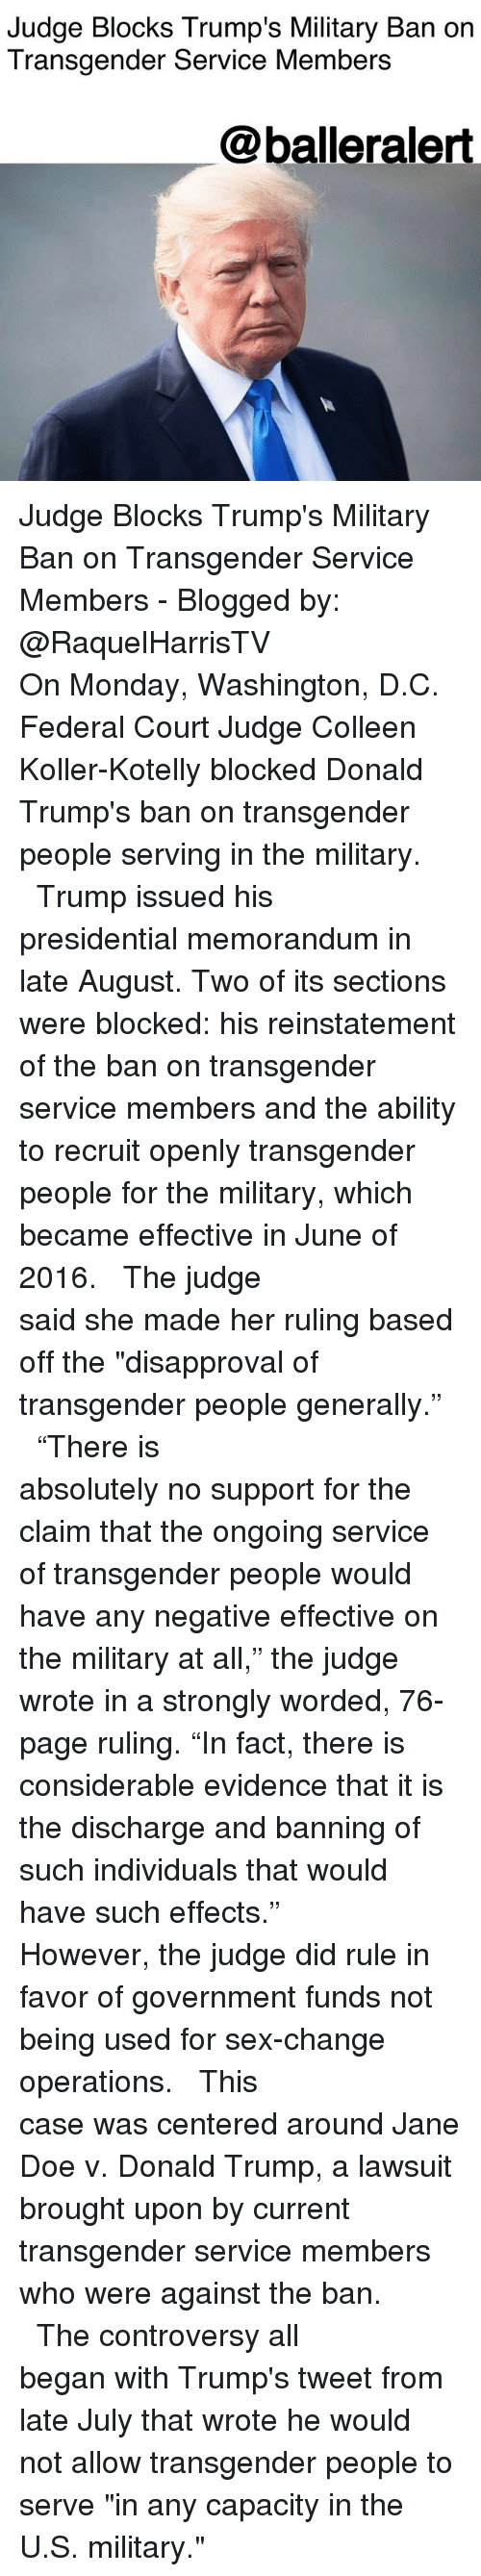 "Doe, Donald Trump, and Memes: Judge Blocks Trump's Military Ban on  Transgender Service Members  @balleralert Judge Blocks Trump's Military Ban on Transgender Service Members - Blogged by: @RaquelHarrisTV ⠀⠀⠀⠀⠀⠀⠀⠀⠀ ⠀⠀⠀⠀⠀⠀⠀⠀⠀ On Monday, Washington, D.C. Federal Court Judge Colleen Koller-Kotelly blocked Donald Trump's ban on transgender people serving in the military. ⠀⠀⠀⠀⠀⠀⠀⠀⠀ ⠀⠀⠀⠀⠀⠀⠀⠀⠀ Trump issued his presidential memorandum in late August. Two of its sections were blocked: his reinstatement of the ban on transgender service members and the ability to recruit openly transgender people for the military, which became effective in June of 2016. ⠀⠀⠀⠀⠀⠀⠀⠀⠀ ⠀⠀⠀⠀⠀⠀⠀⠀⠀ The judge said she made her ruling based off the ""disapproval of transgender people generally."" ⠀⠀⠀⠀⠀⠀⠀⠀⠀ ⠀⠀⠀⠀⠀⠀⠀⠀⠀ ""There is absolutely no support for the claim that the ongoing service of transgender people would have any negative effective on the military at all,"" the judge wrote in a strongly worded, 76-page ruling. ""In fact, there is considerable evidence that it is the discharge and banning of such individuals that would have such effects."" ⠀⠀⠀⠀⠀⠀⠀⠀⠀ ⠀⠀⠀⠀⠀⠀⠀⠀⠀ However, the judge did rule in favor of government funds not being used for sex-change operations. ⠀⠀⠀⠀⠀⠀⠀⠀⠀ ⠀⠀⠀⠀⠀⠀⠀⠀⠀ This case was centered around Jane Doe v. Donald Trump, a lawsuit brought upon by current transgender service members who were against the ban. ⠀⠀⠀⠀⠀⠀⠀⠀⠀ ⠀⠀⠀⠀⠀⠀⠀⠀⠀ The controversy all began with Trump's tweet from late July that wrote he would not allow transgender people to serve ""in any capacity in the U.S. military."""